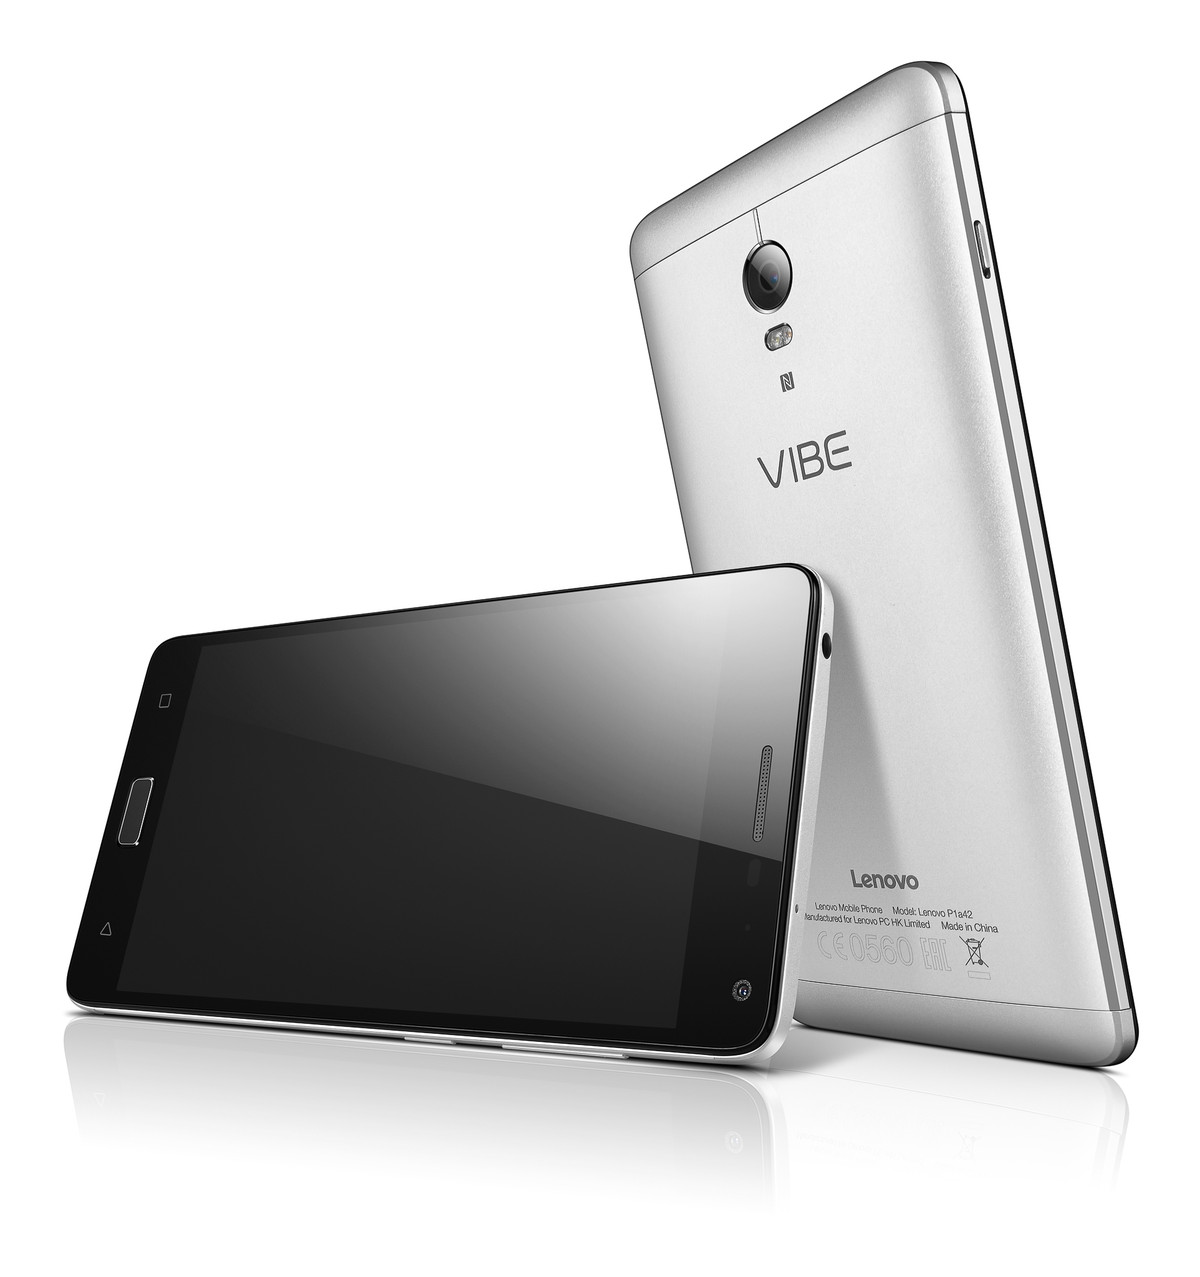 How To Hard Reset Lenovo Vibe P1m In 4 Easy Steps